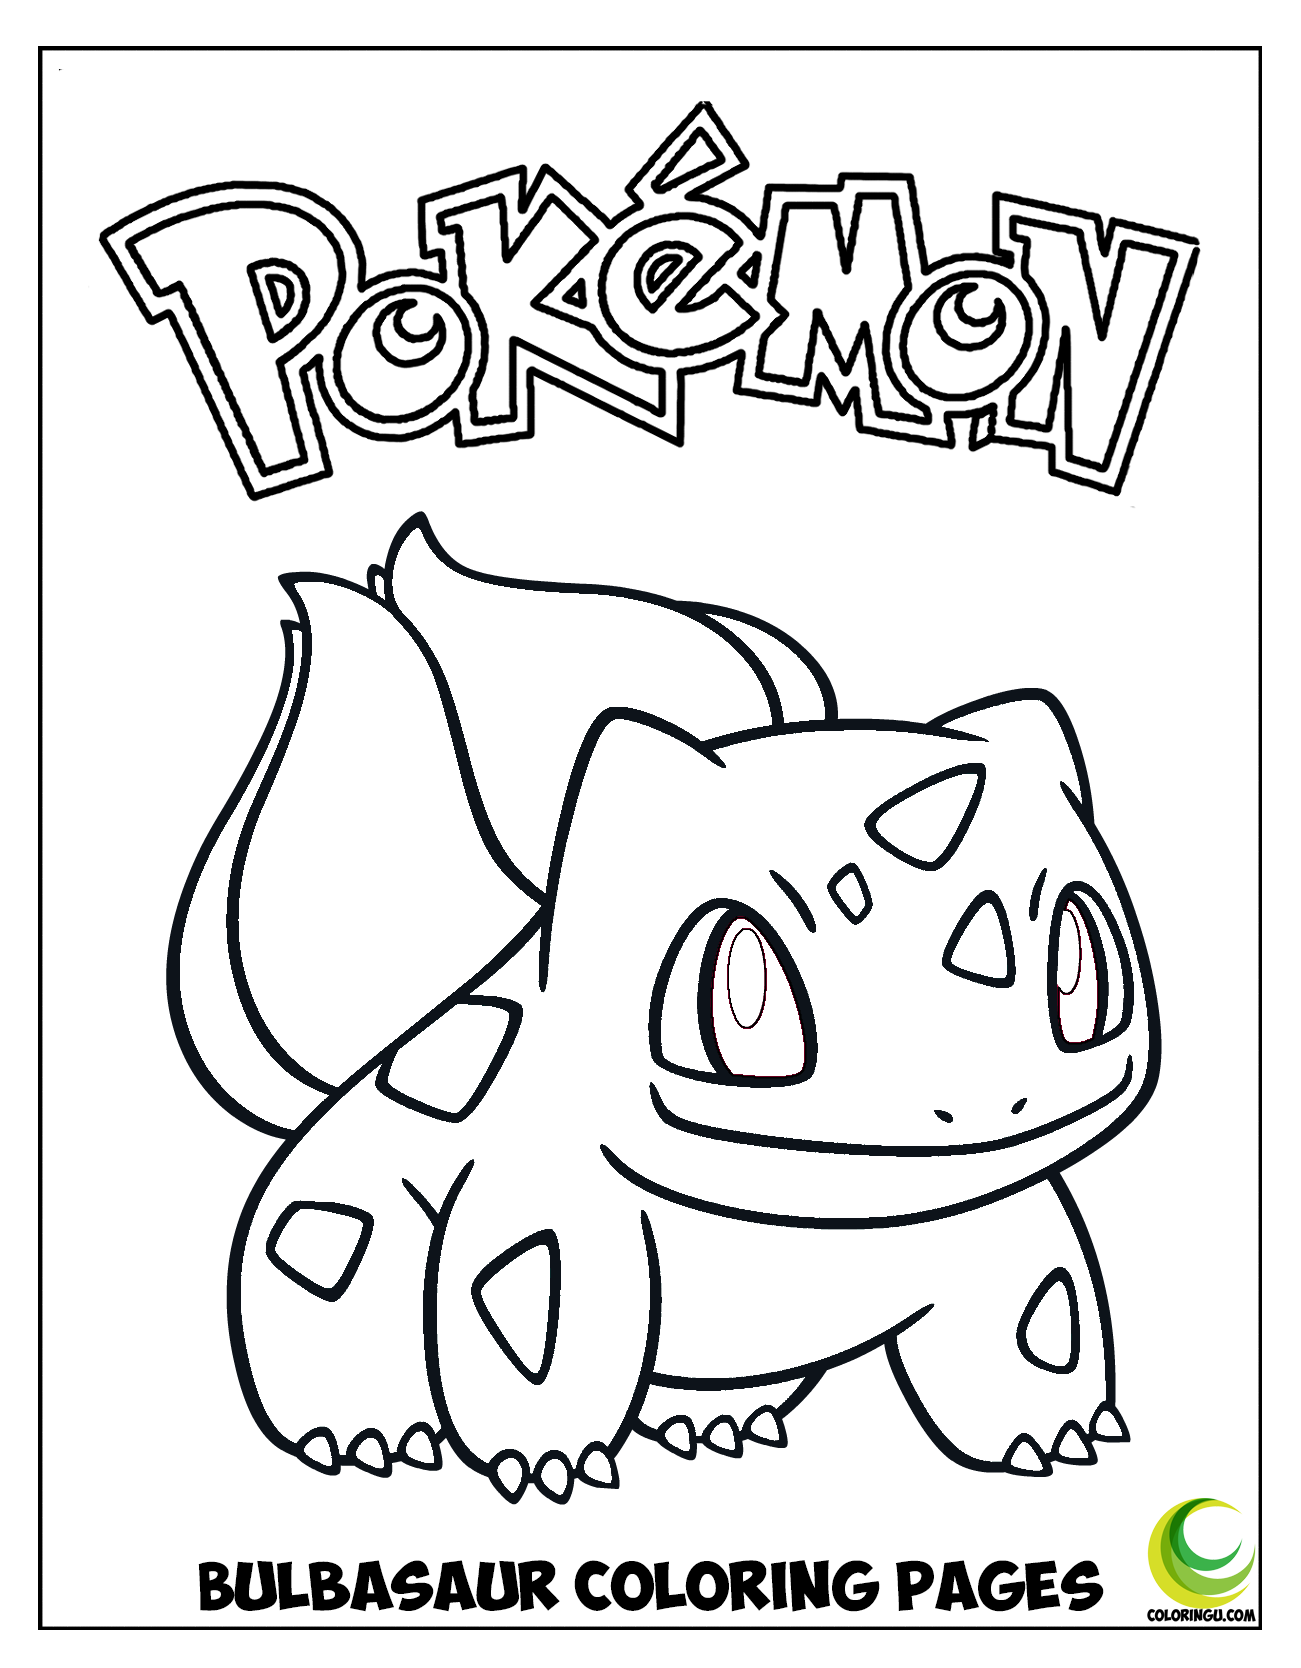 Bulbasaur Coloring Pages in 19  Coloring pages, Pokemon